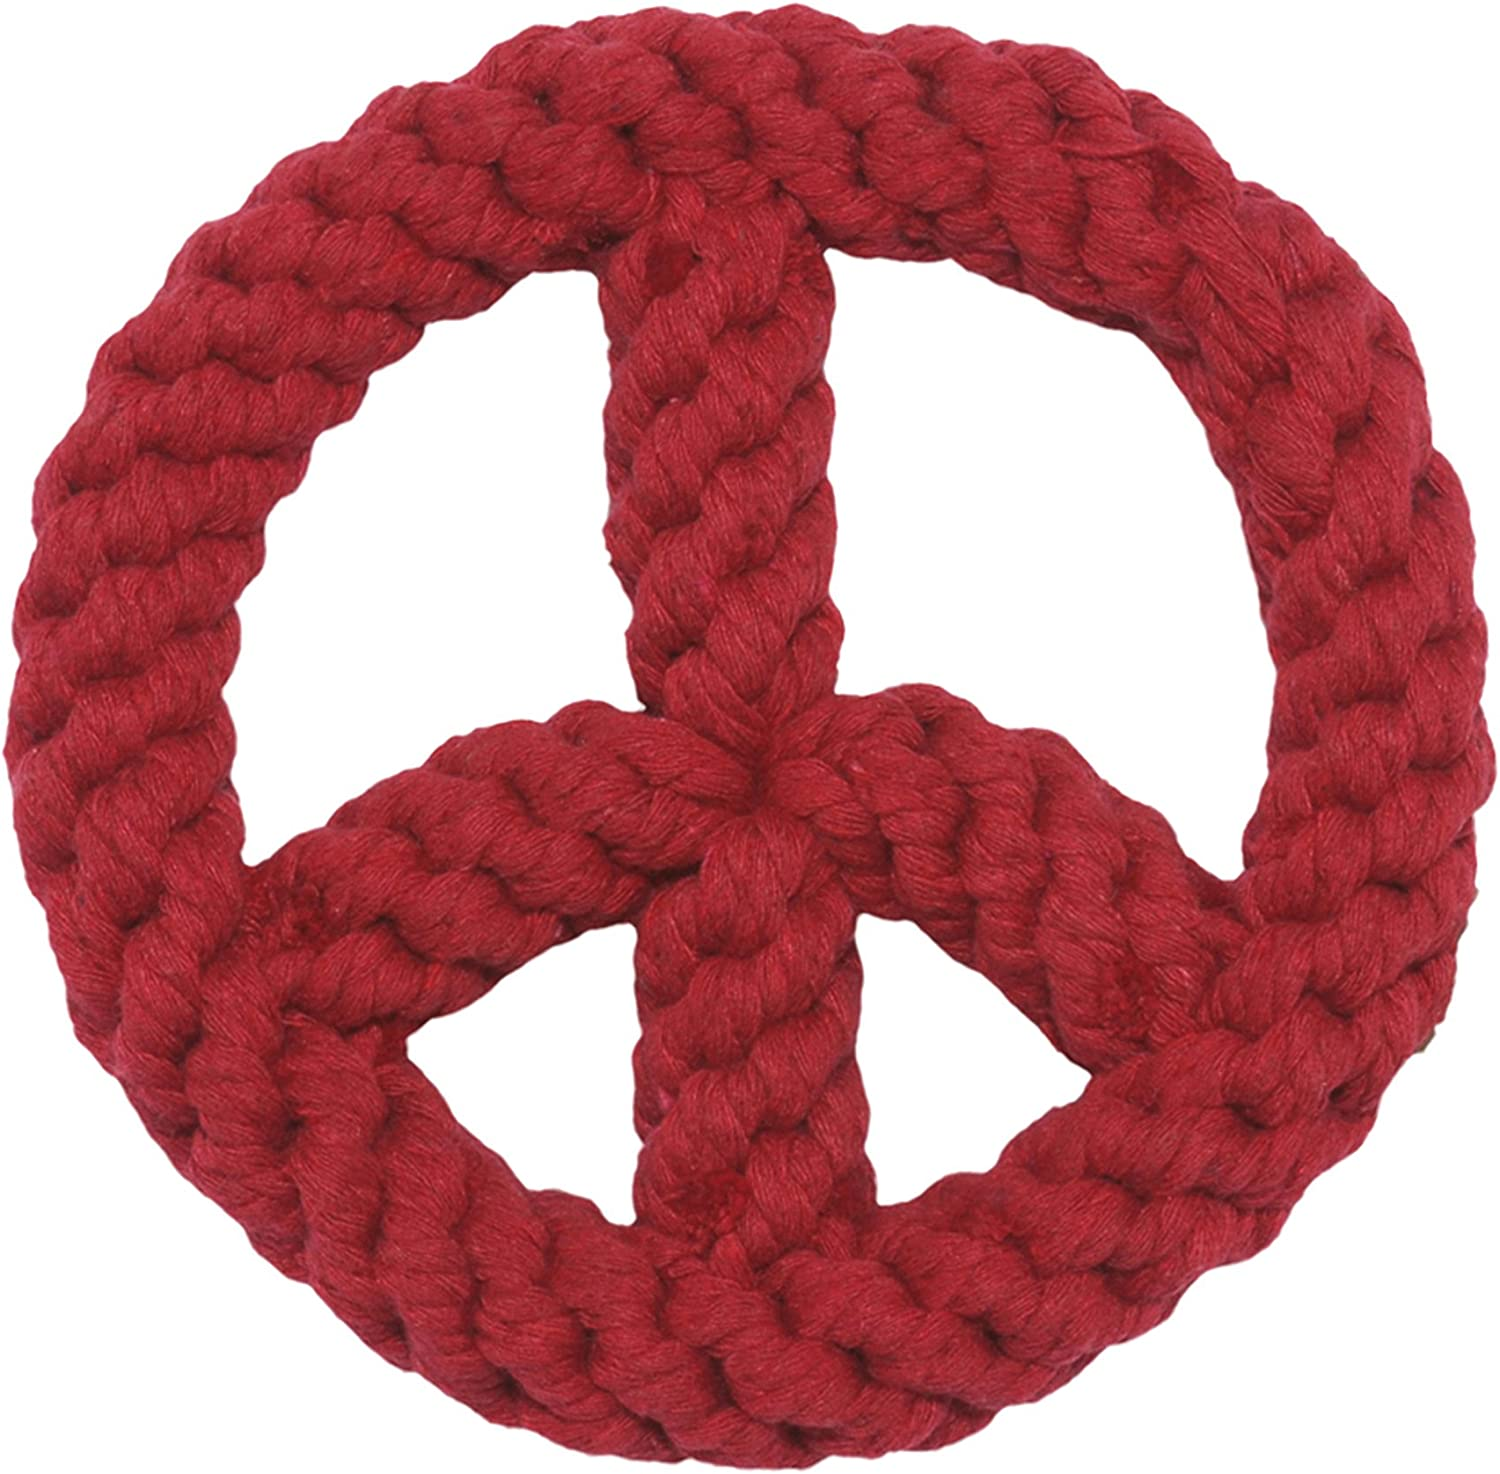 Red Peace Sign 7インチ(18cm) One Size Rope Dog Toy カラー:Red サイズ:OS